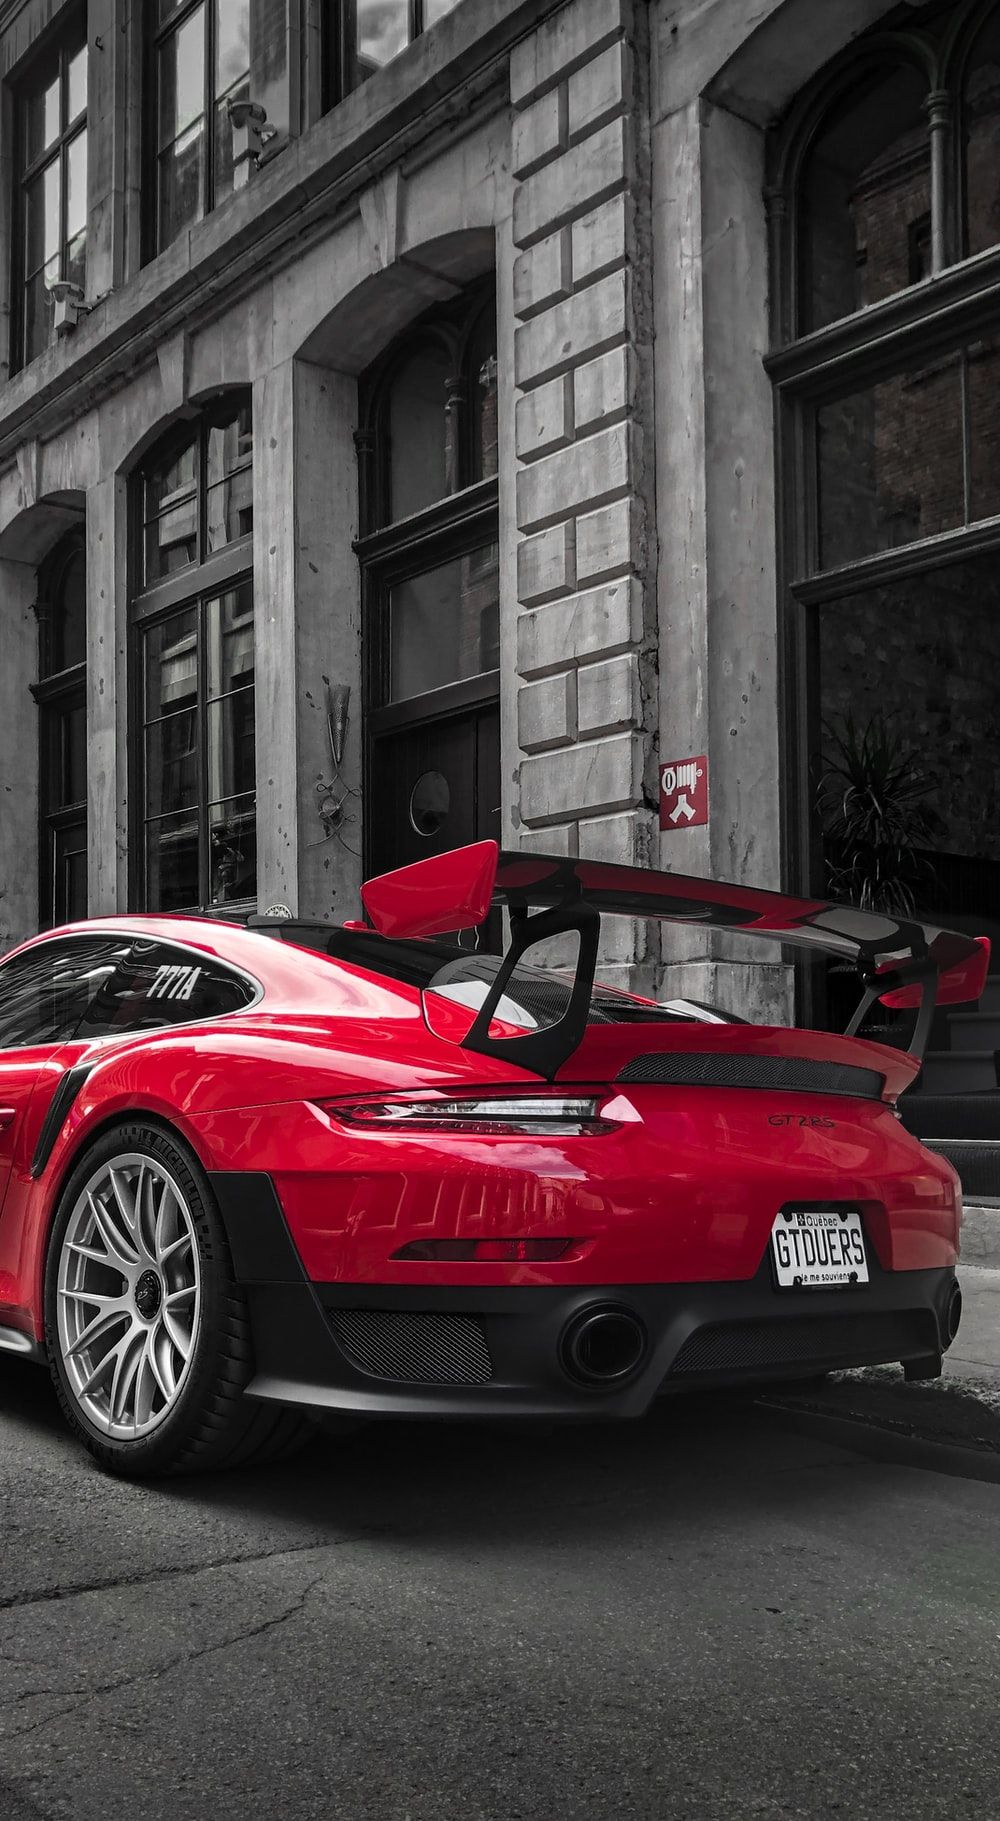 selective color photography of red Porsche sports car parked at roadside